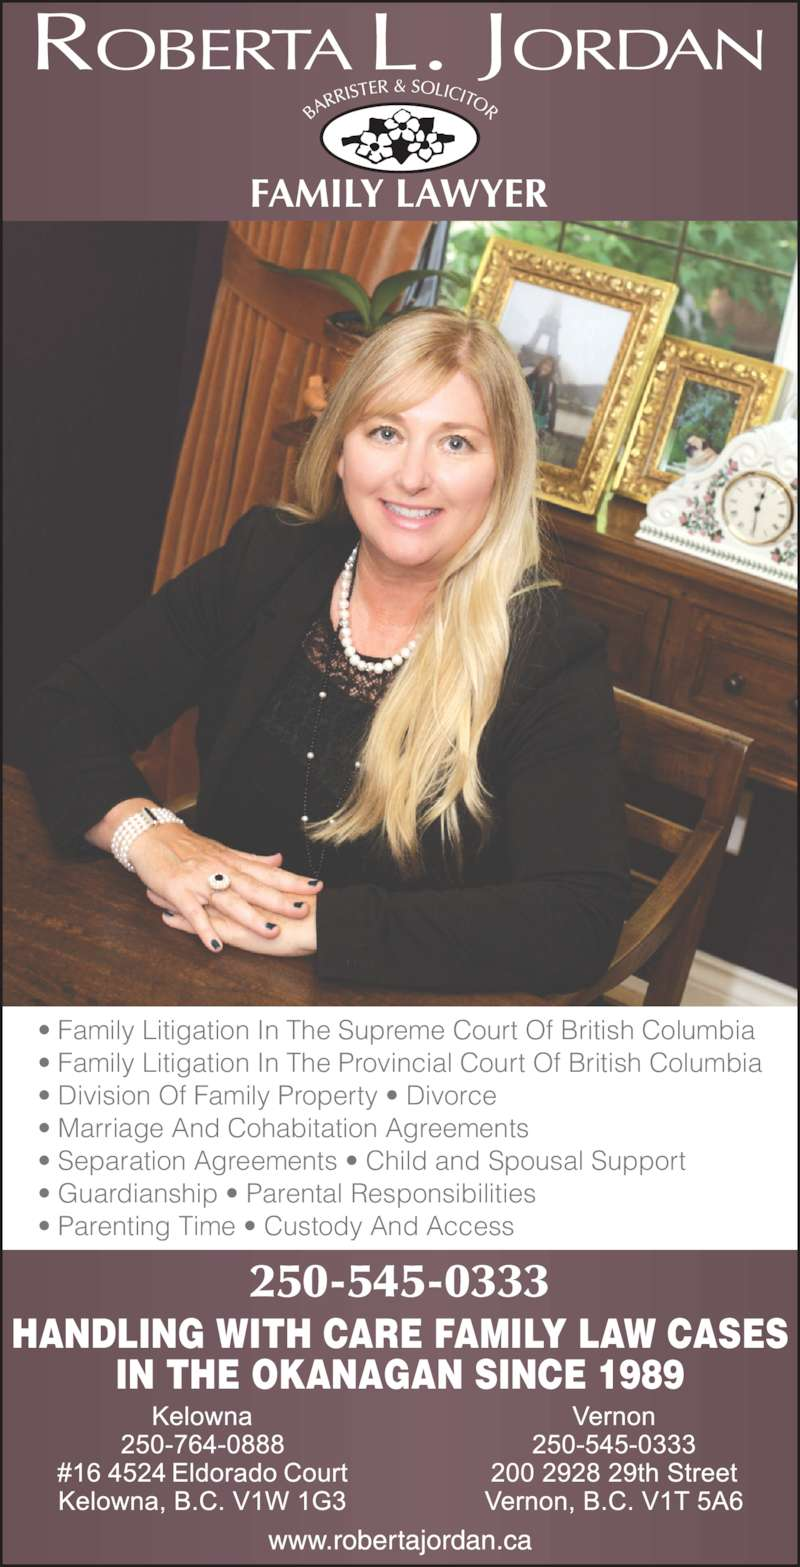 Roberta L. Jordan (250-545-0333) - Display Ad - HANDLING WITH CARE FAMILY LAW CASES IN THE OKANAGAN SINCE 1989 250-545-0333 ? Family Litigation In The Supreme Court Of British Columbia ? Family Litigation In The Provincial Court Of British Columbia ? Division Of Family Property ? Divorce ? Marriage And Cohabitation Agreements  ? Separation Agreements ? Child and Spousal Support ? Guardianship ? Parental Responsibilities ? Parenting Time ? Custody And Access